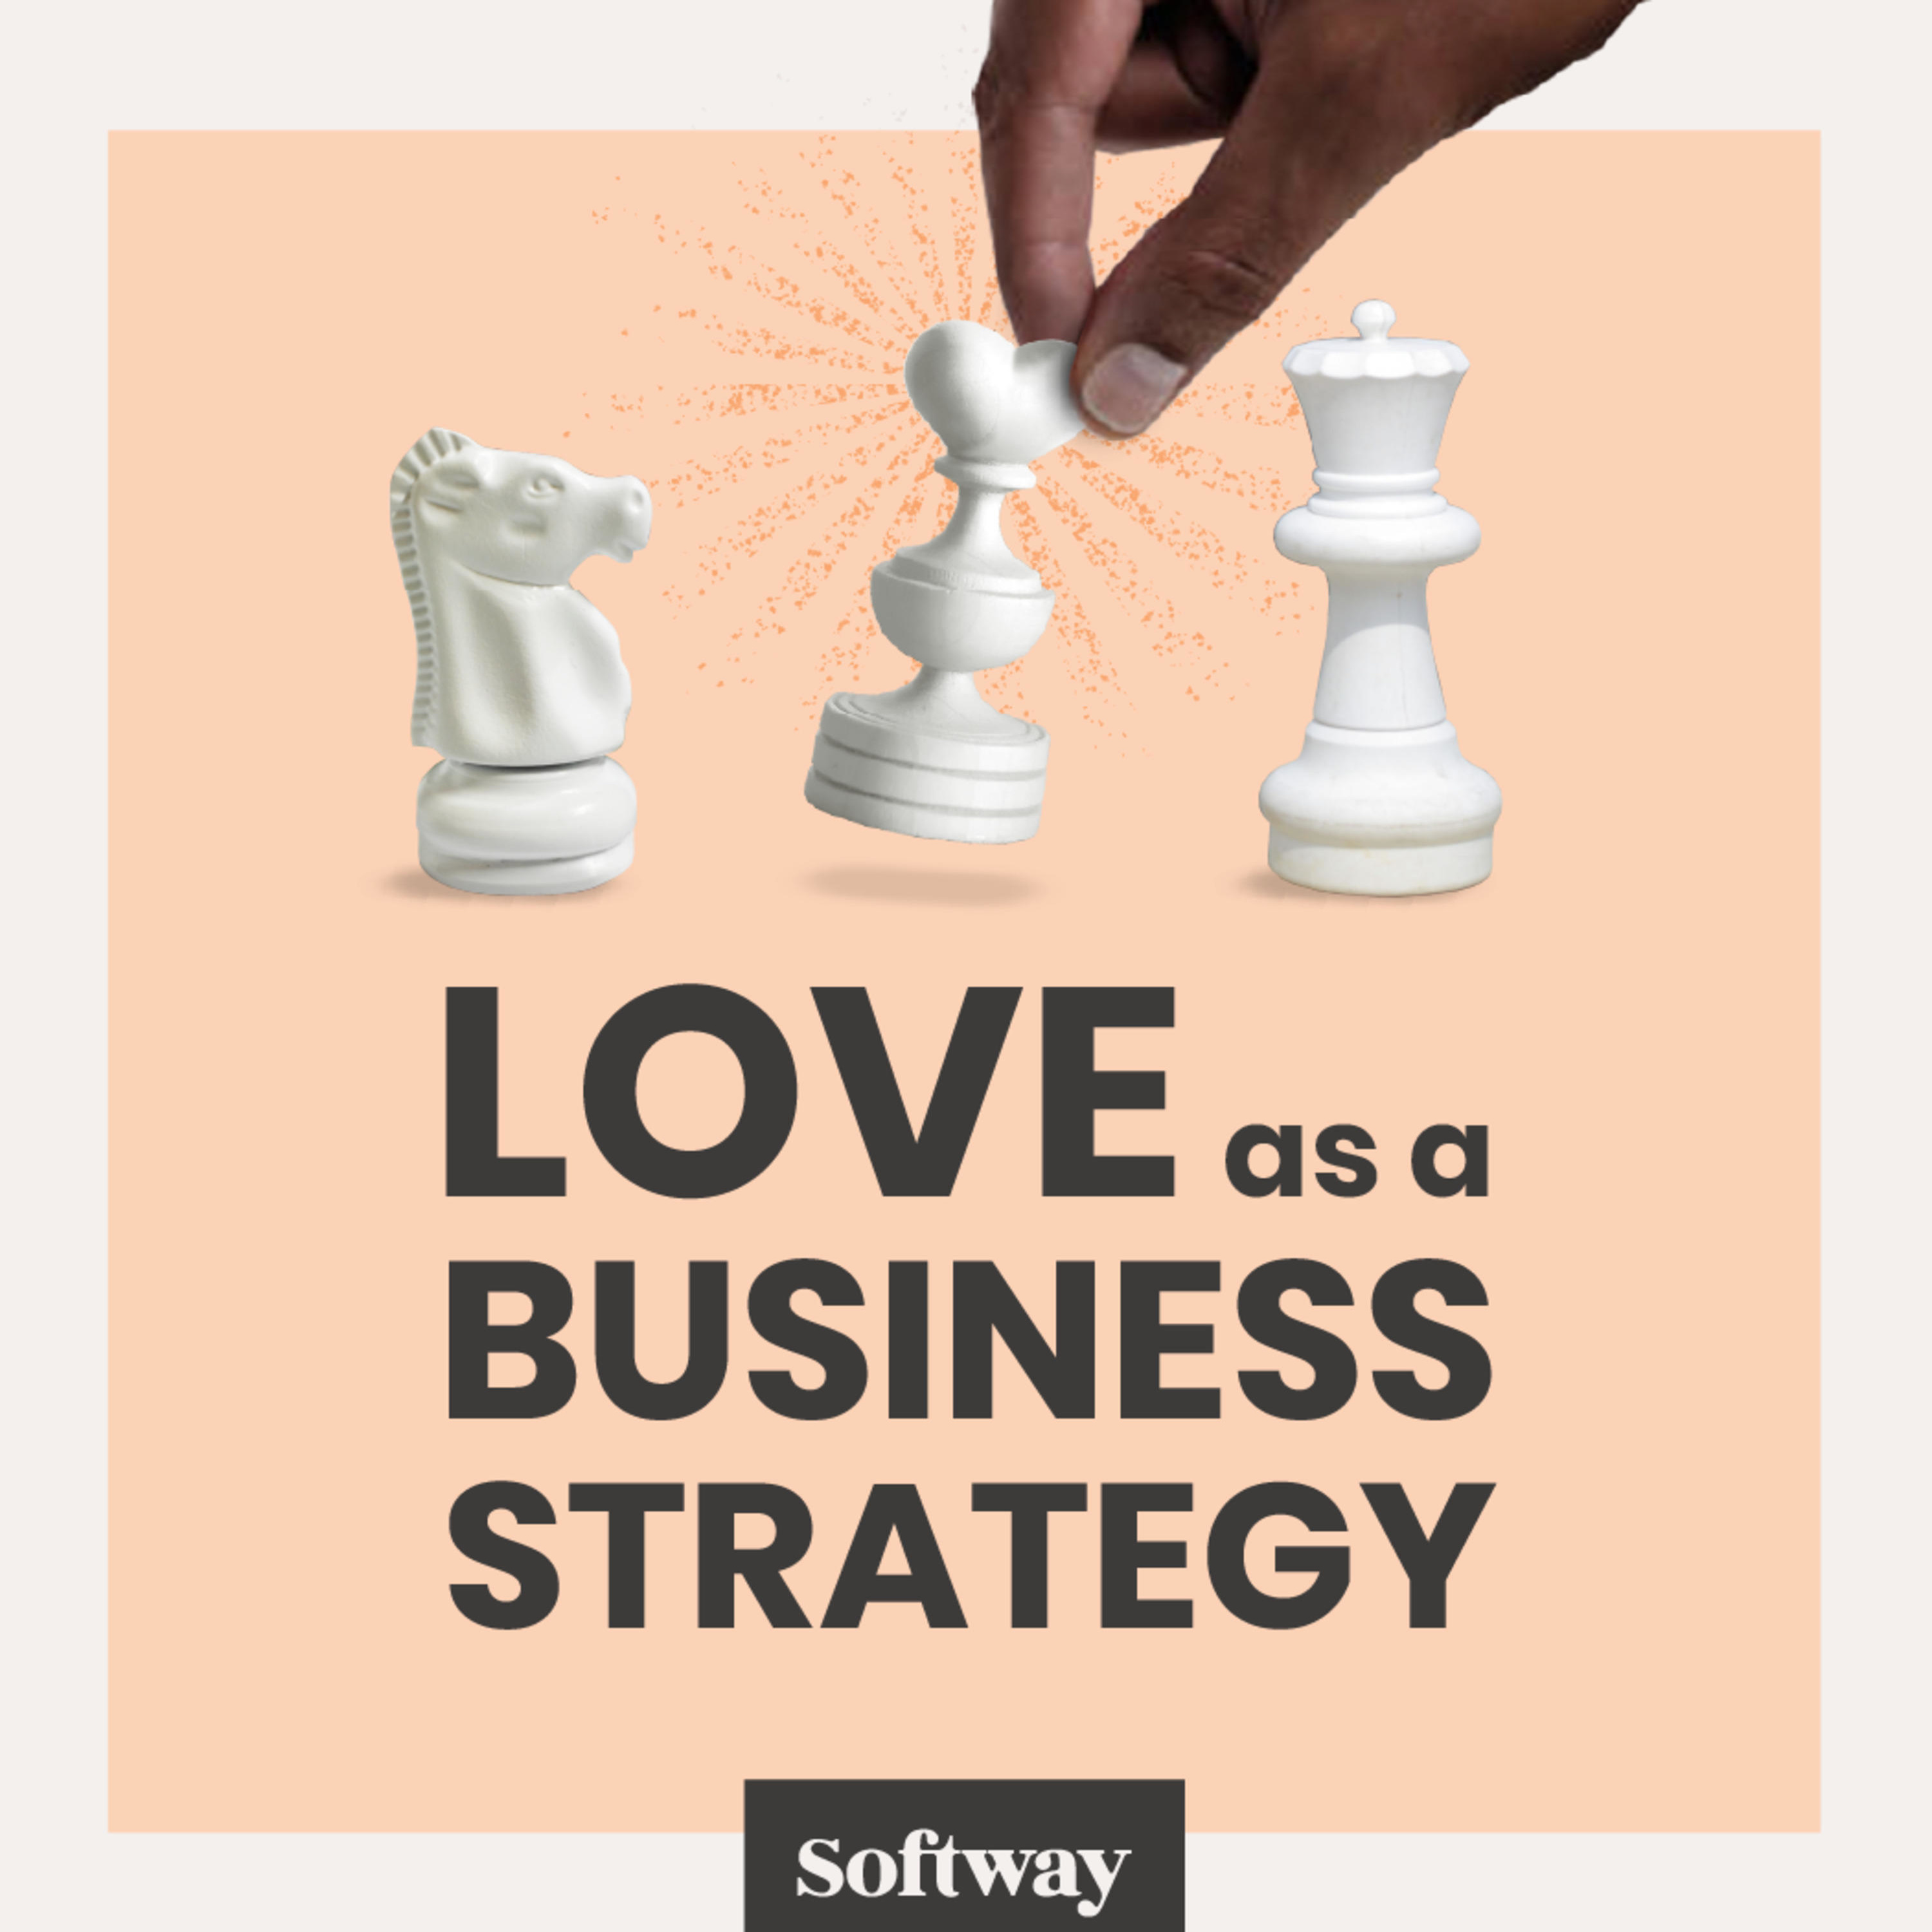 8. Love as a Delicious Strategy